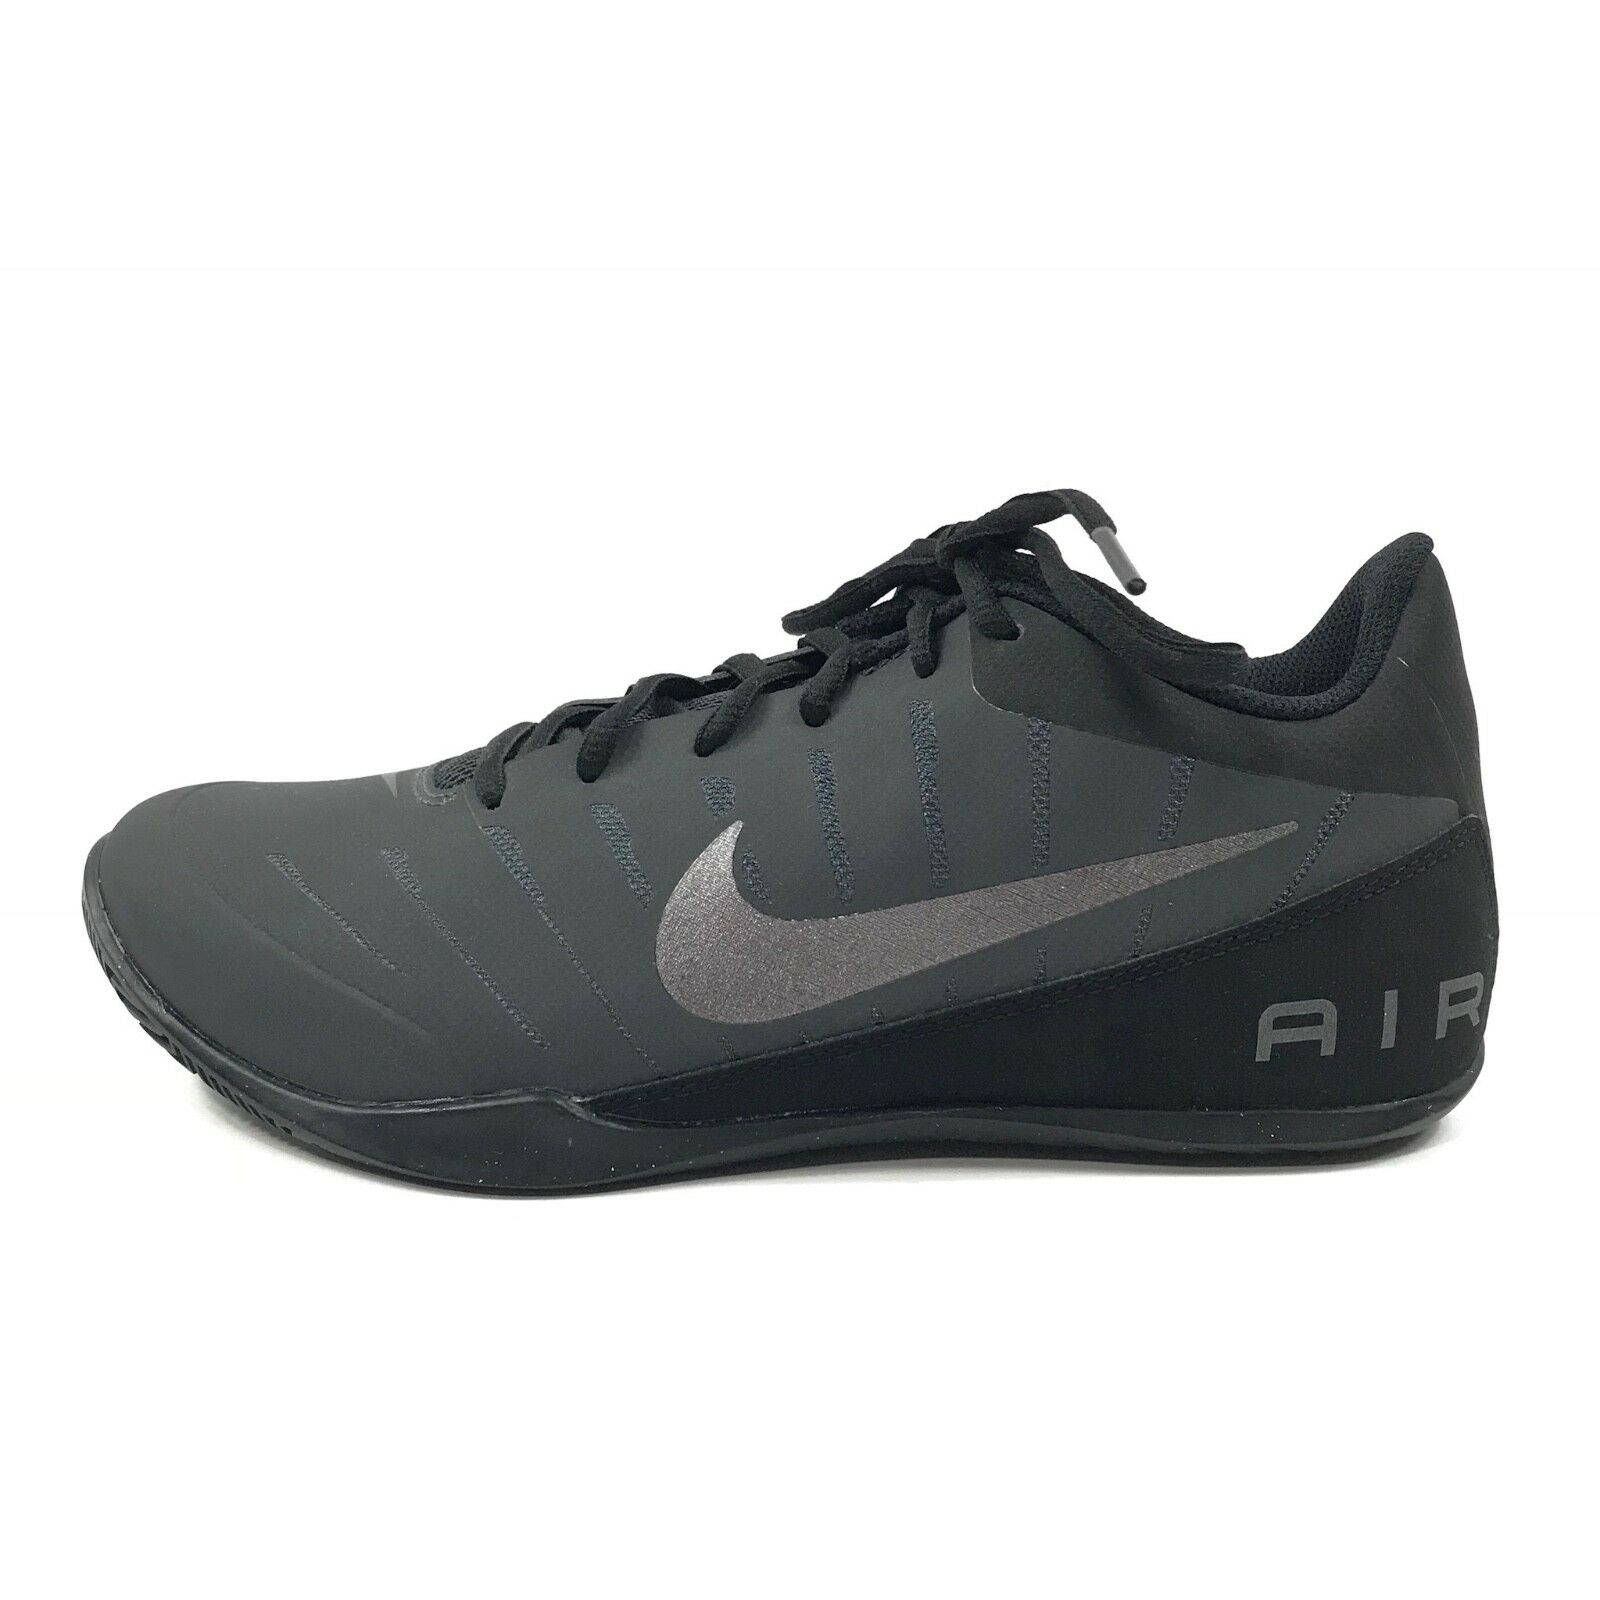 Nike Mens Air Marvin Low 2 Basketball shoes shoes shoes Anthracite Black Sz 7.5 830368-003 f90cd4